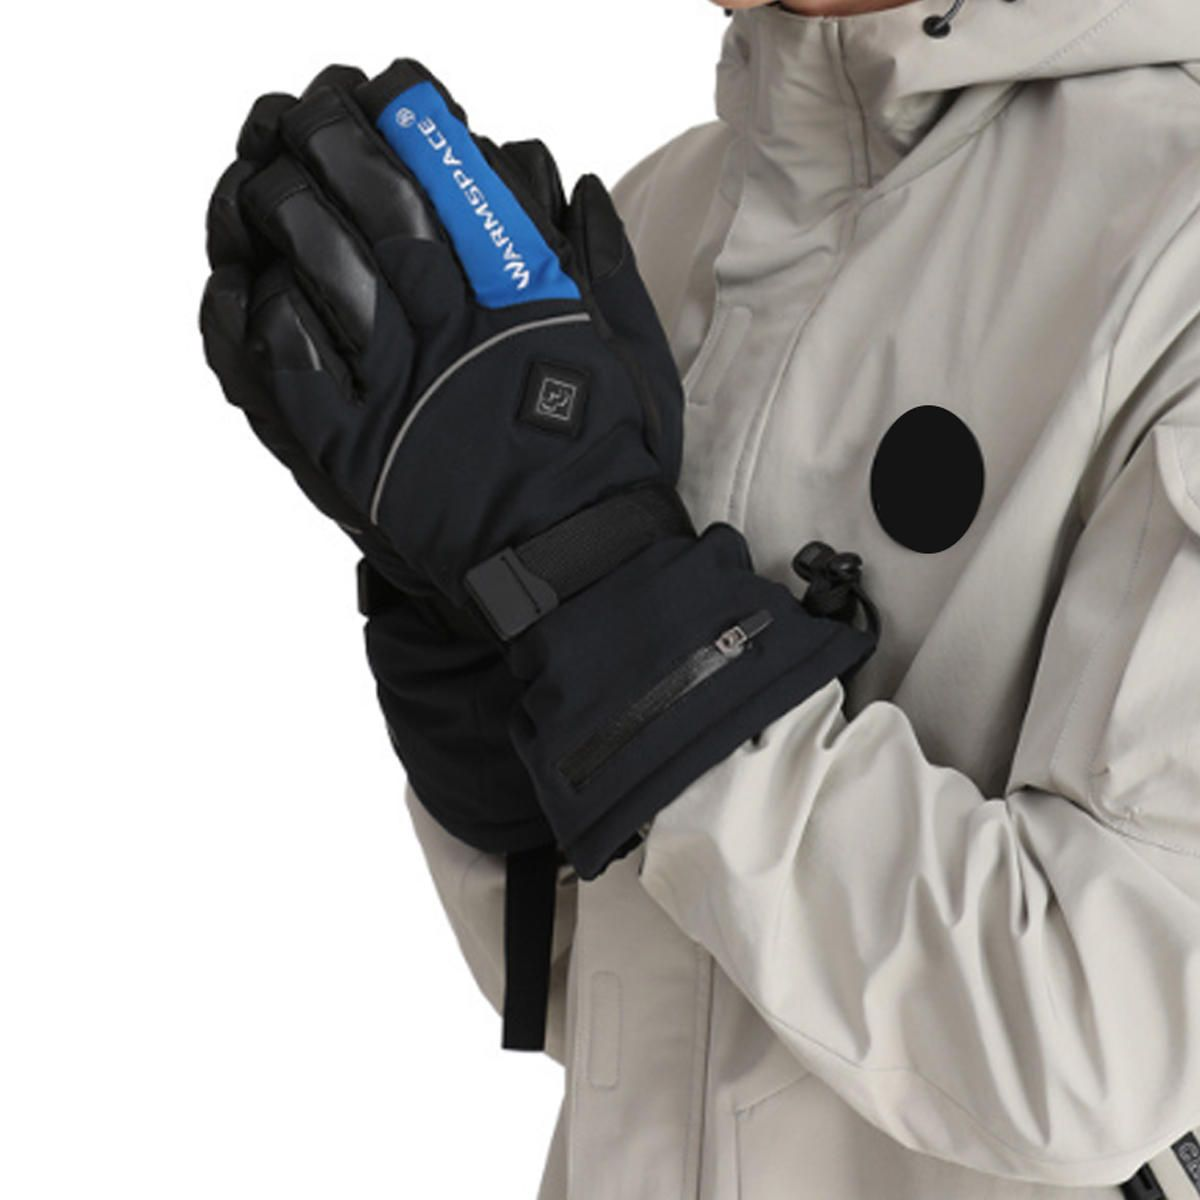 ZXE US$76.74 Motorcycle Gloves Electric Heated Winter Warm Thermal Ski Snowboard